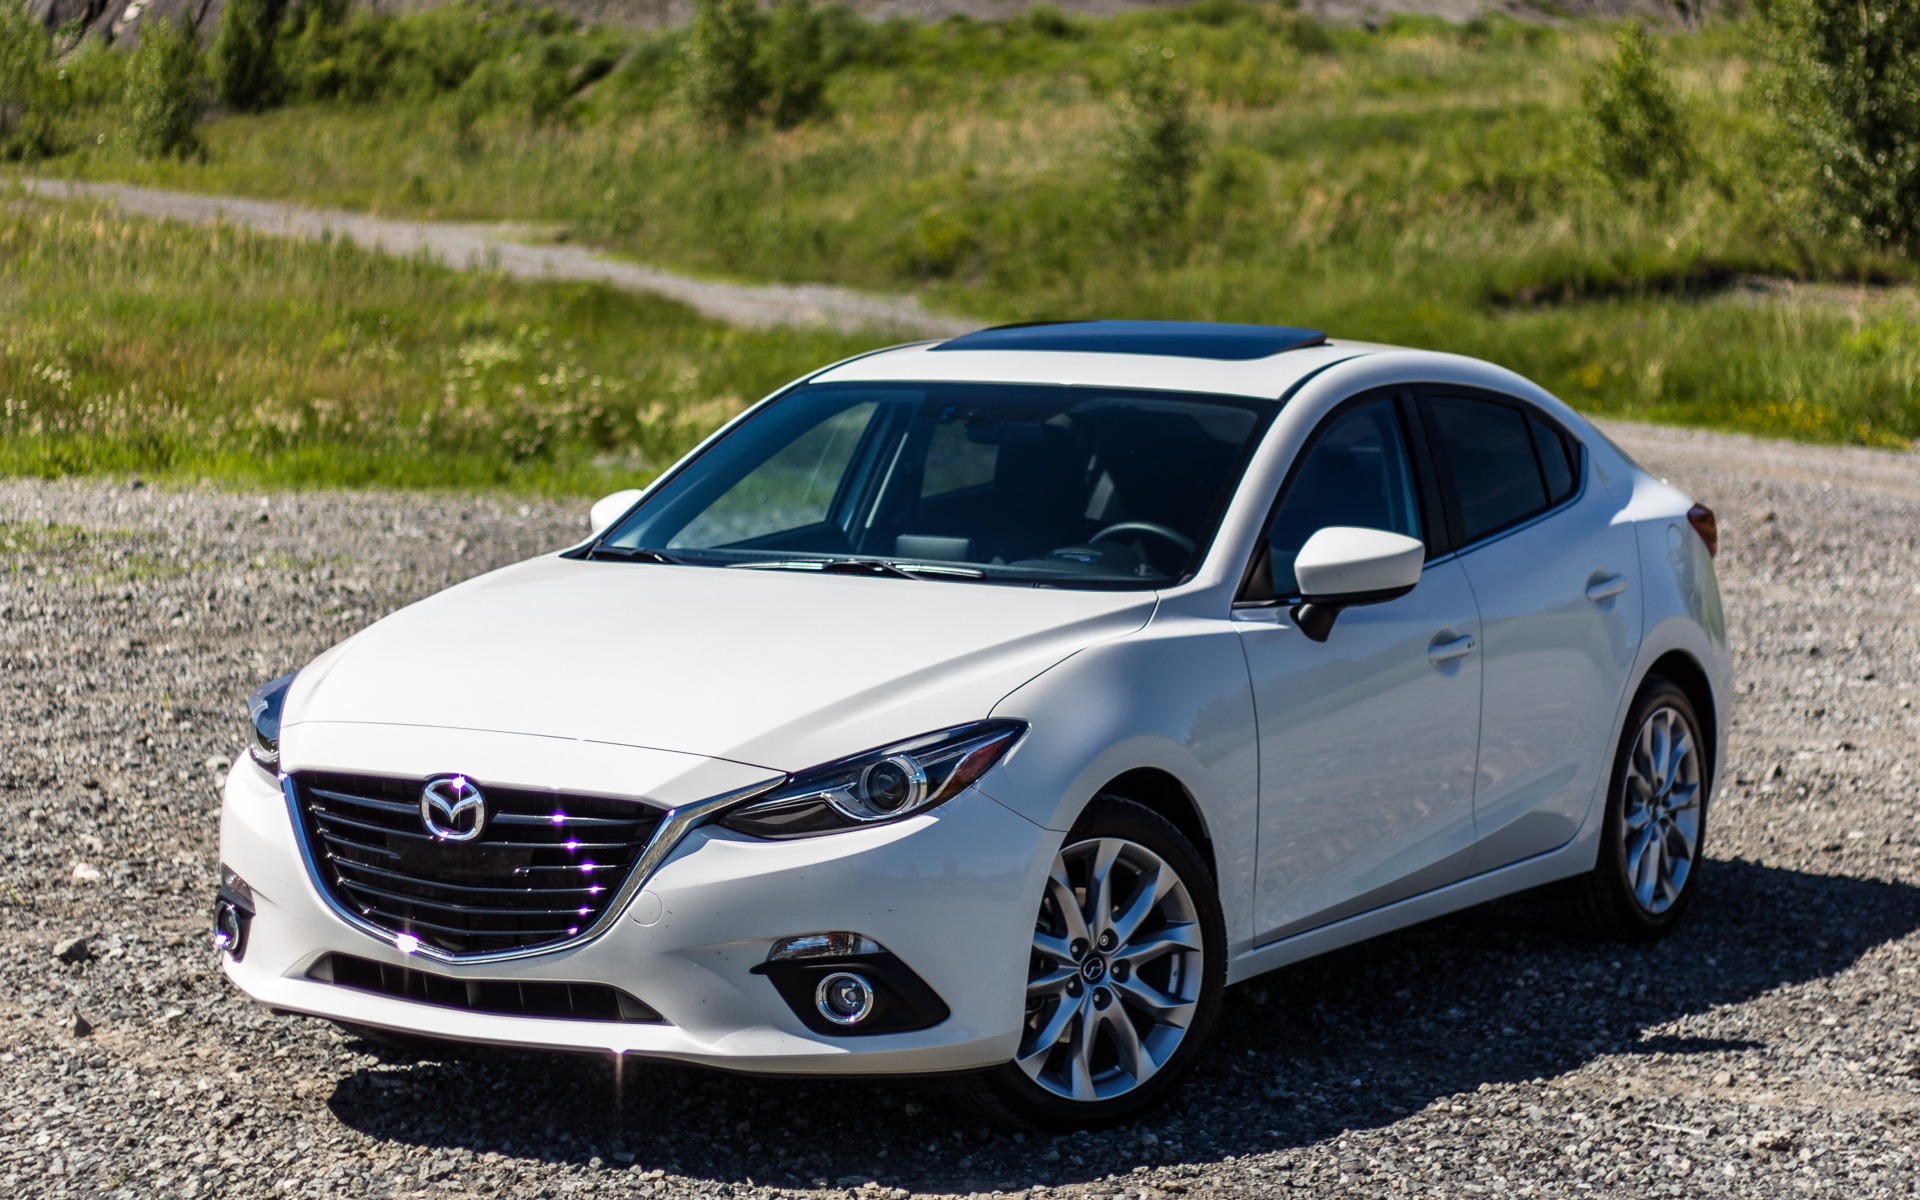 A Round Of Changes For The 2017 Mazda3 7 14